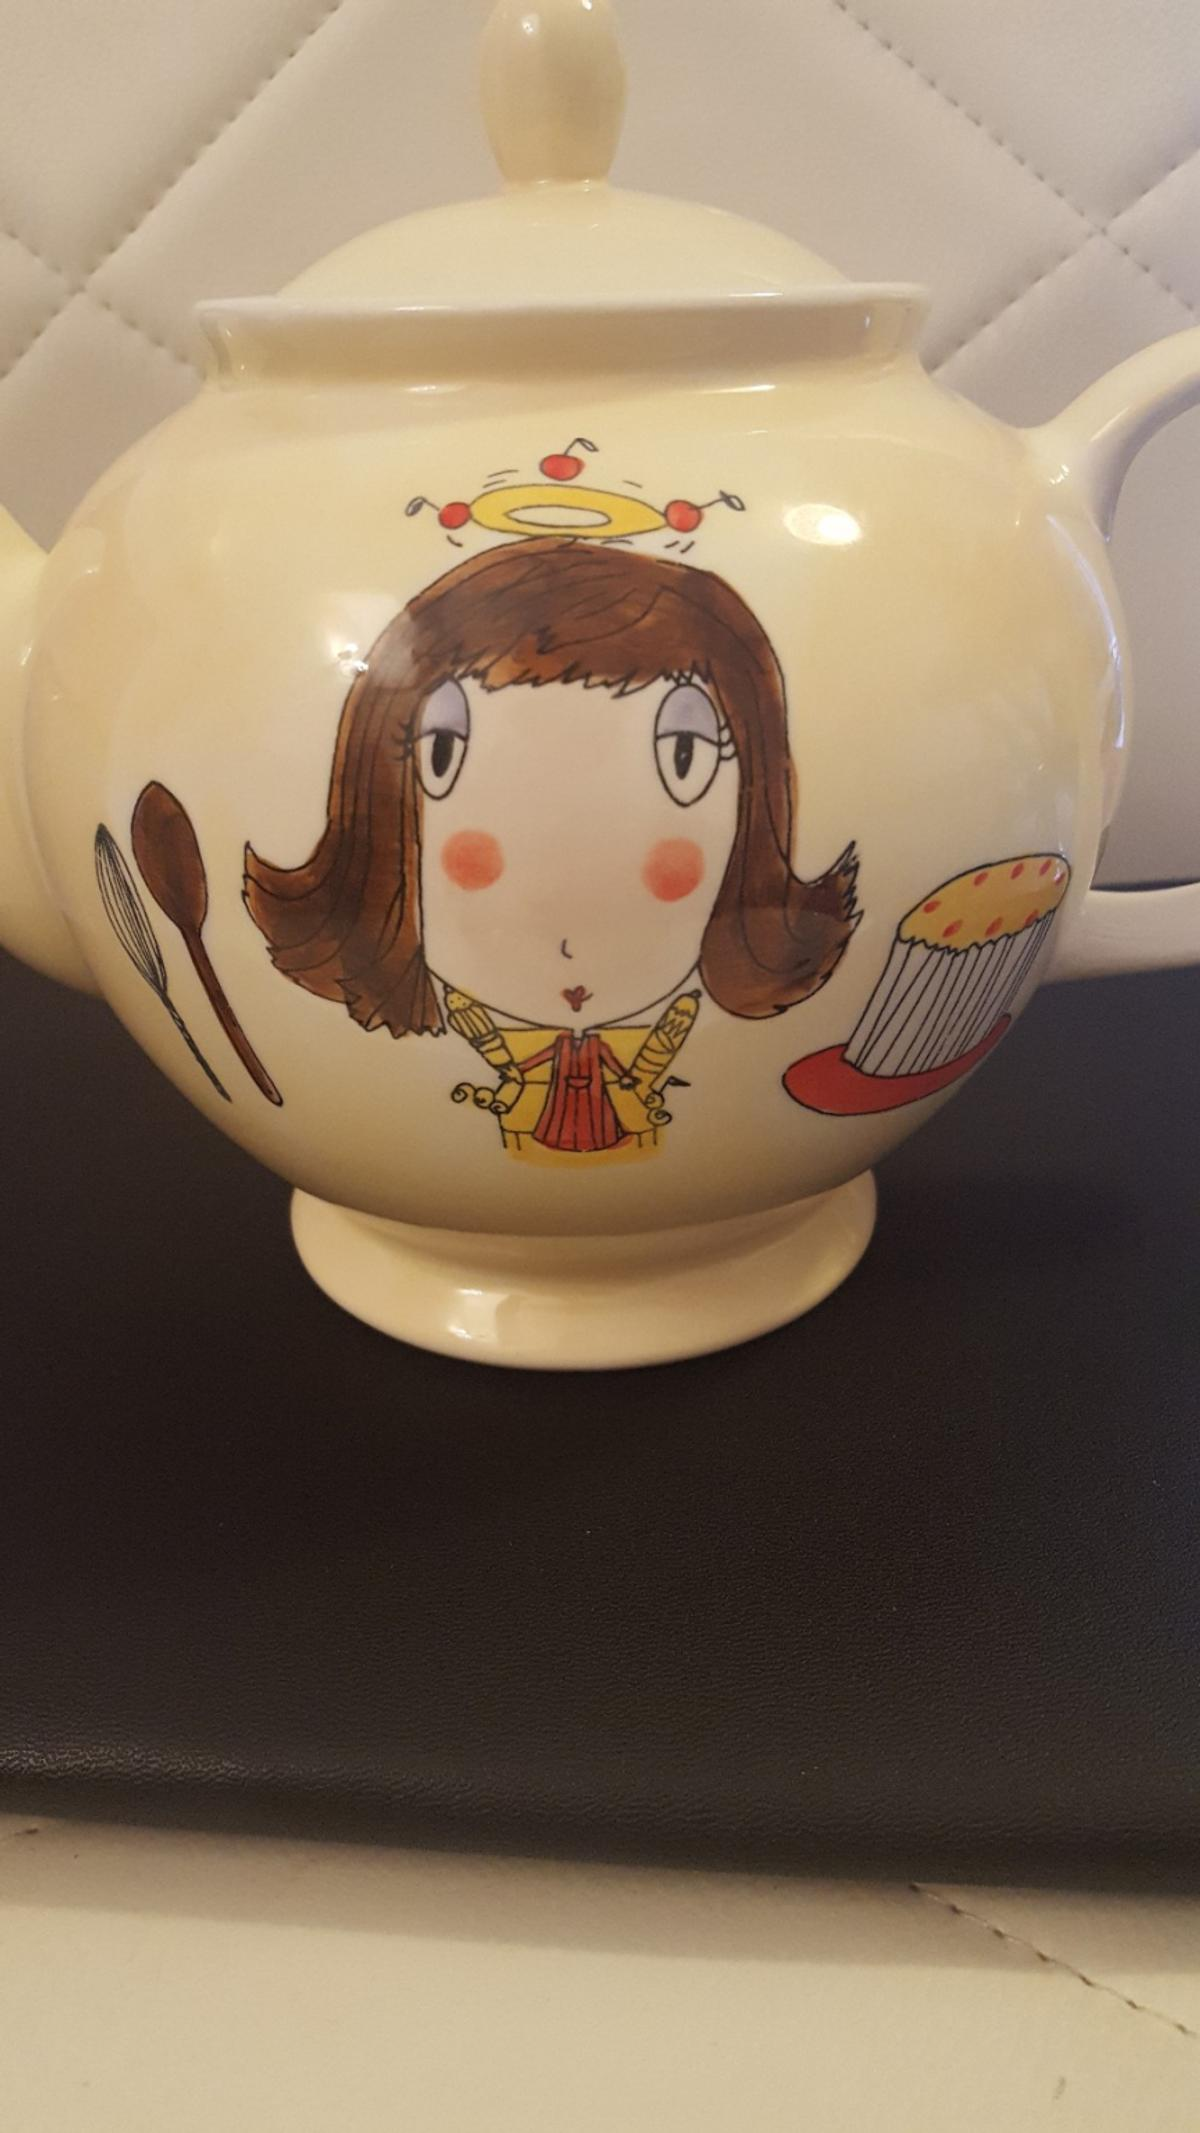 WHITTARD OF CHELSEA HANDPAINTED LARGE 2 PINT TEAPOT 'THE DOMESTIC GODDESS' BY BETH UNUSED AS NEW CONDITION.